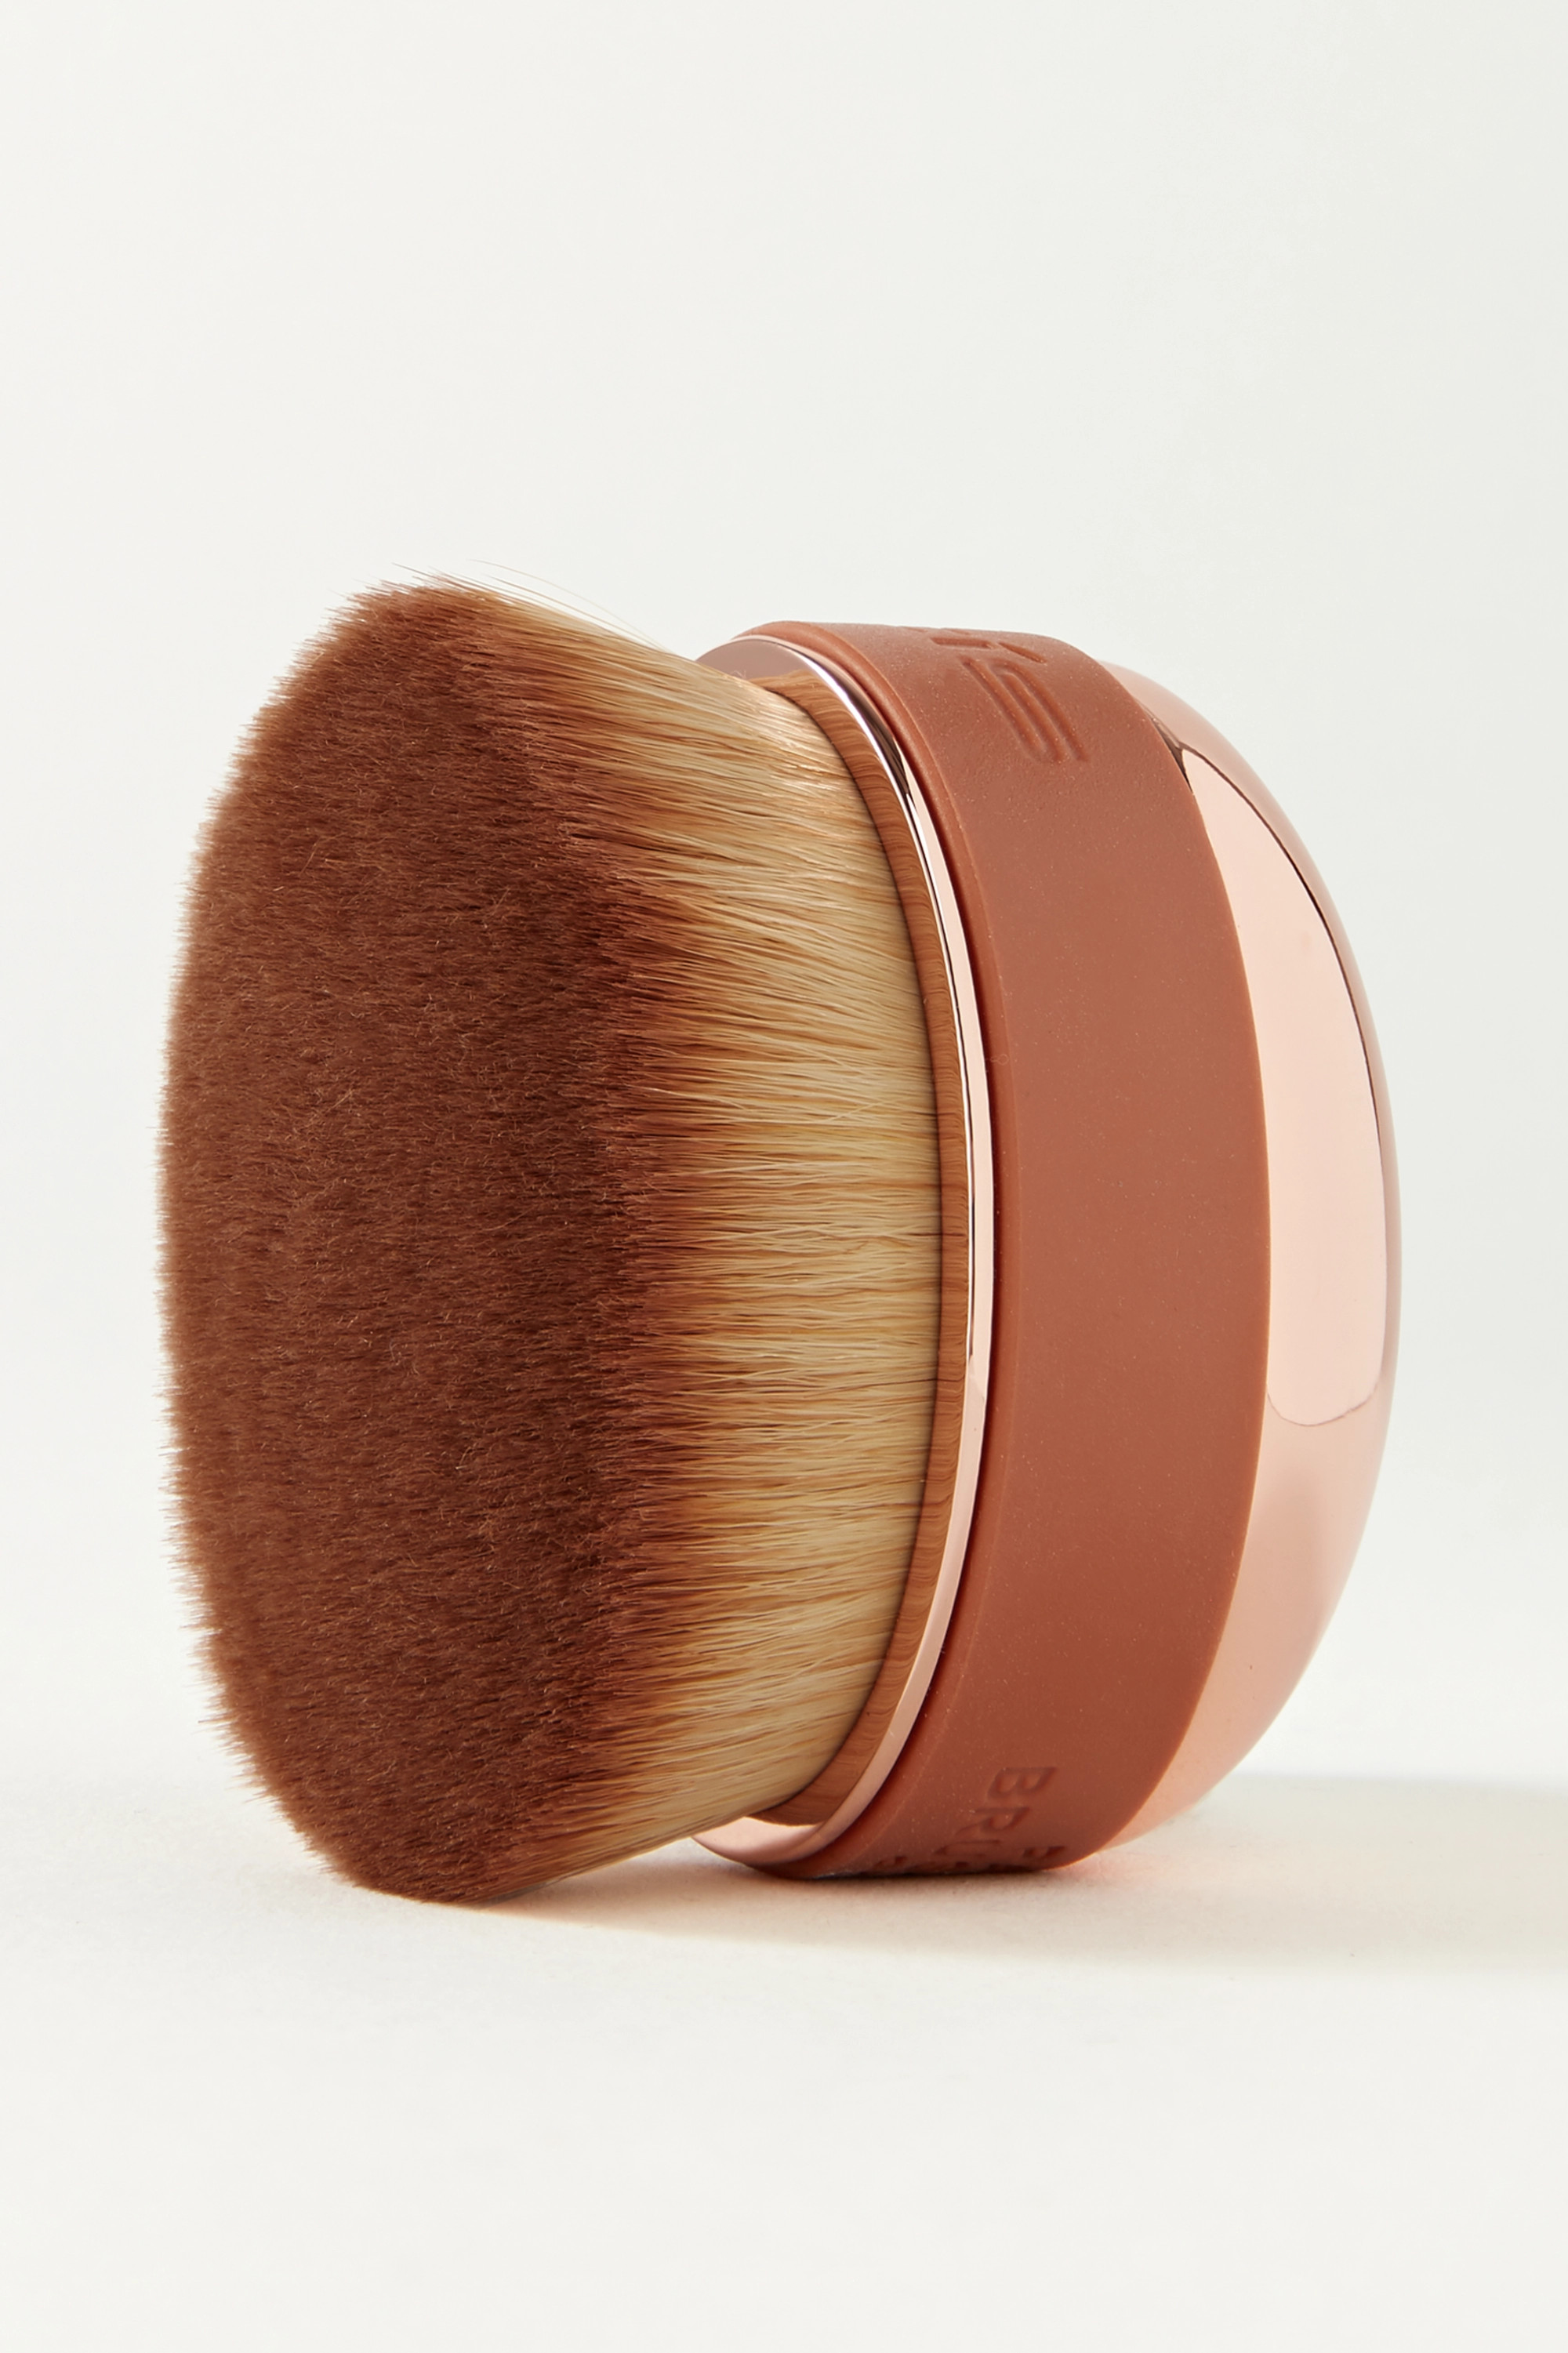 Artis Brush - Elite Rose Gold Palm Brush Mini